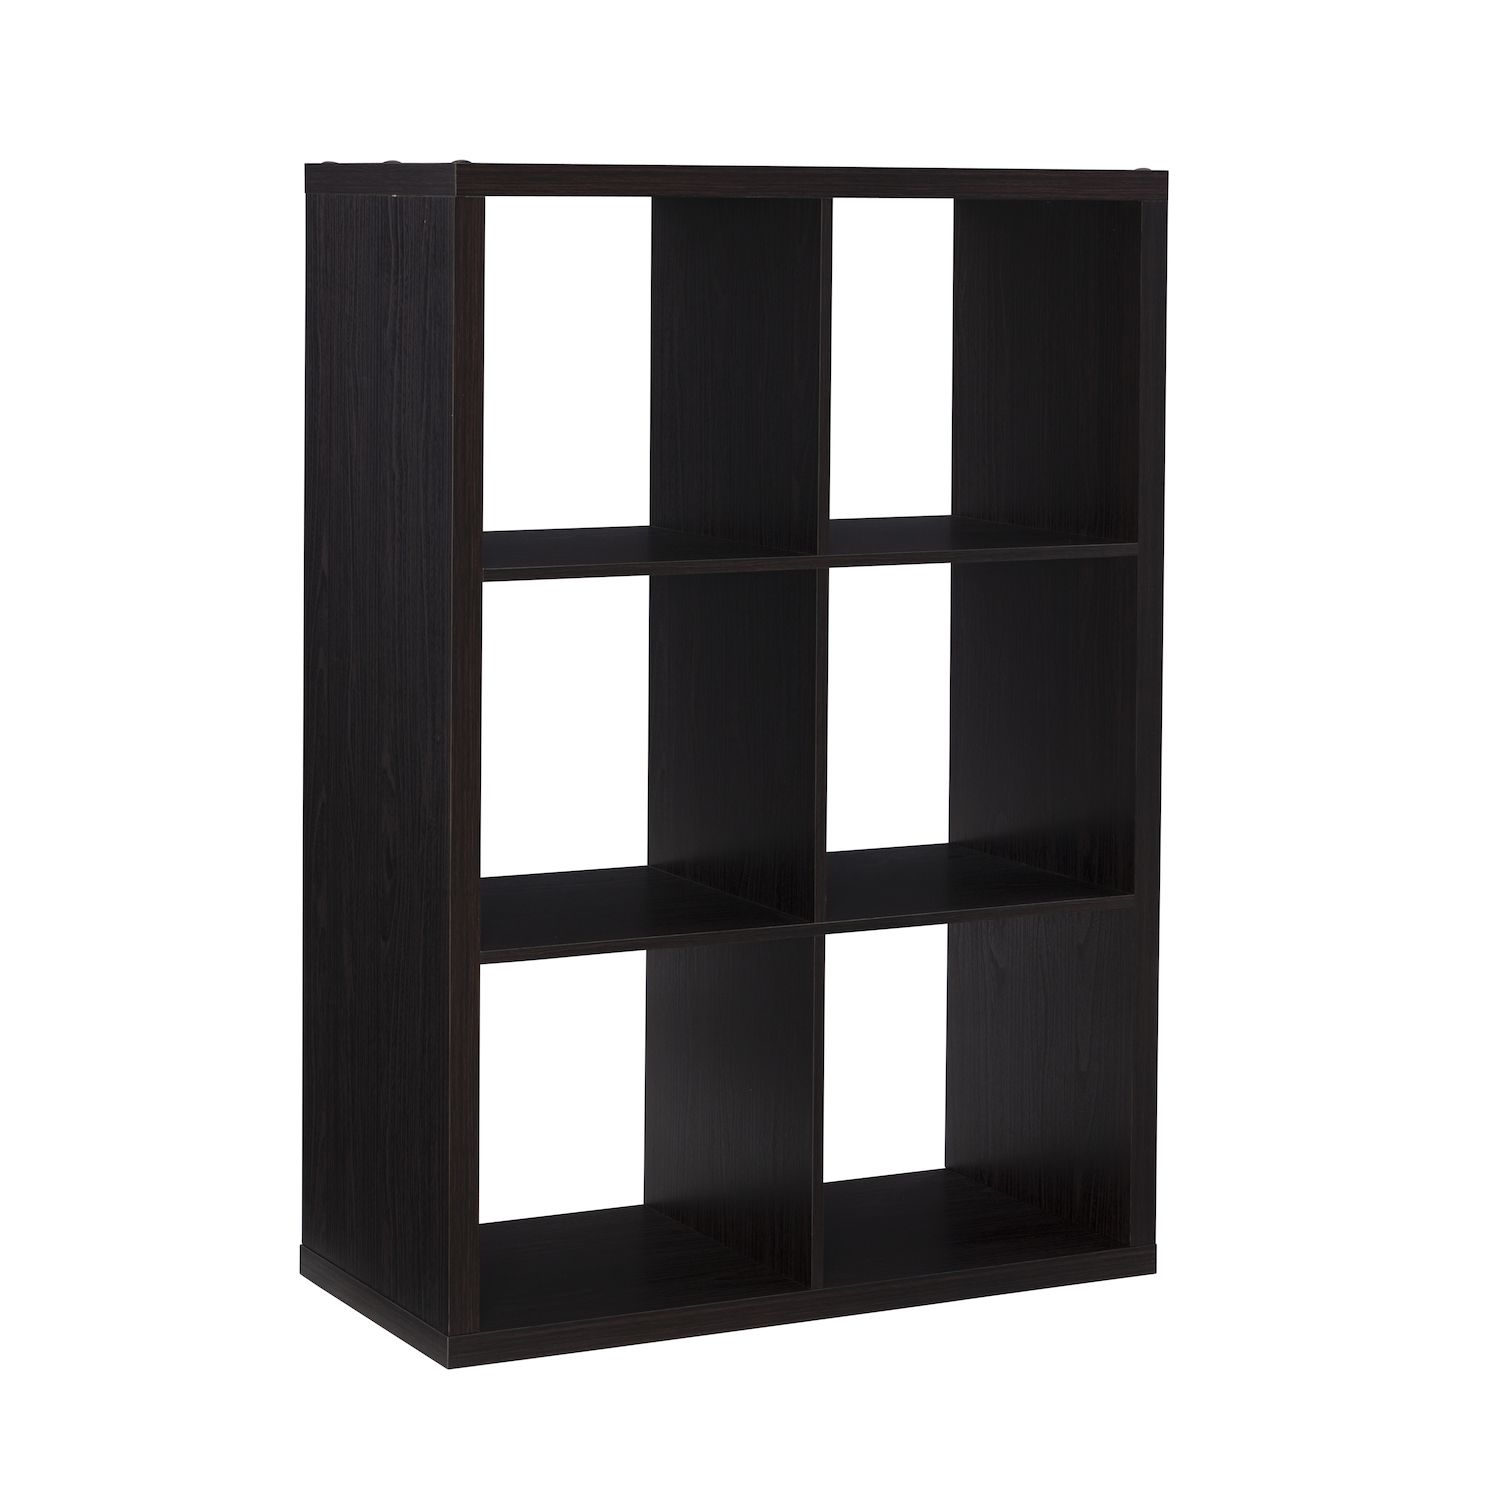 Living Room Cabinet Furniture Part - 24: 6-Cube Storage Cube Storage Unit